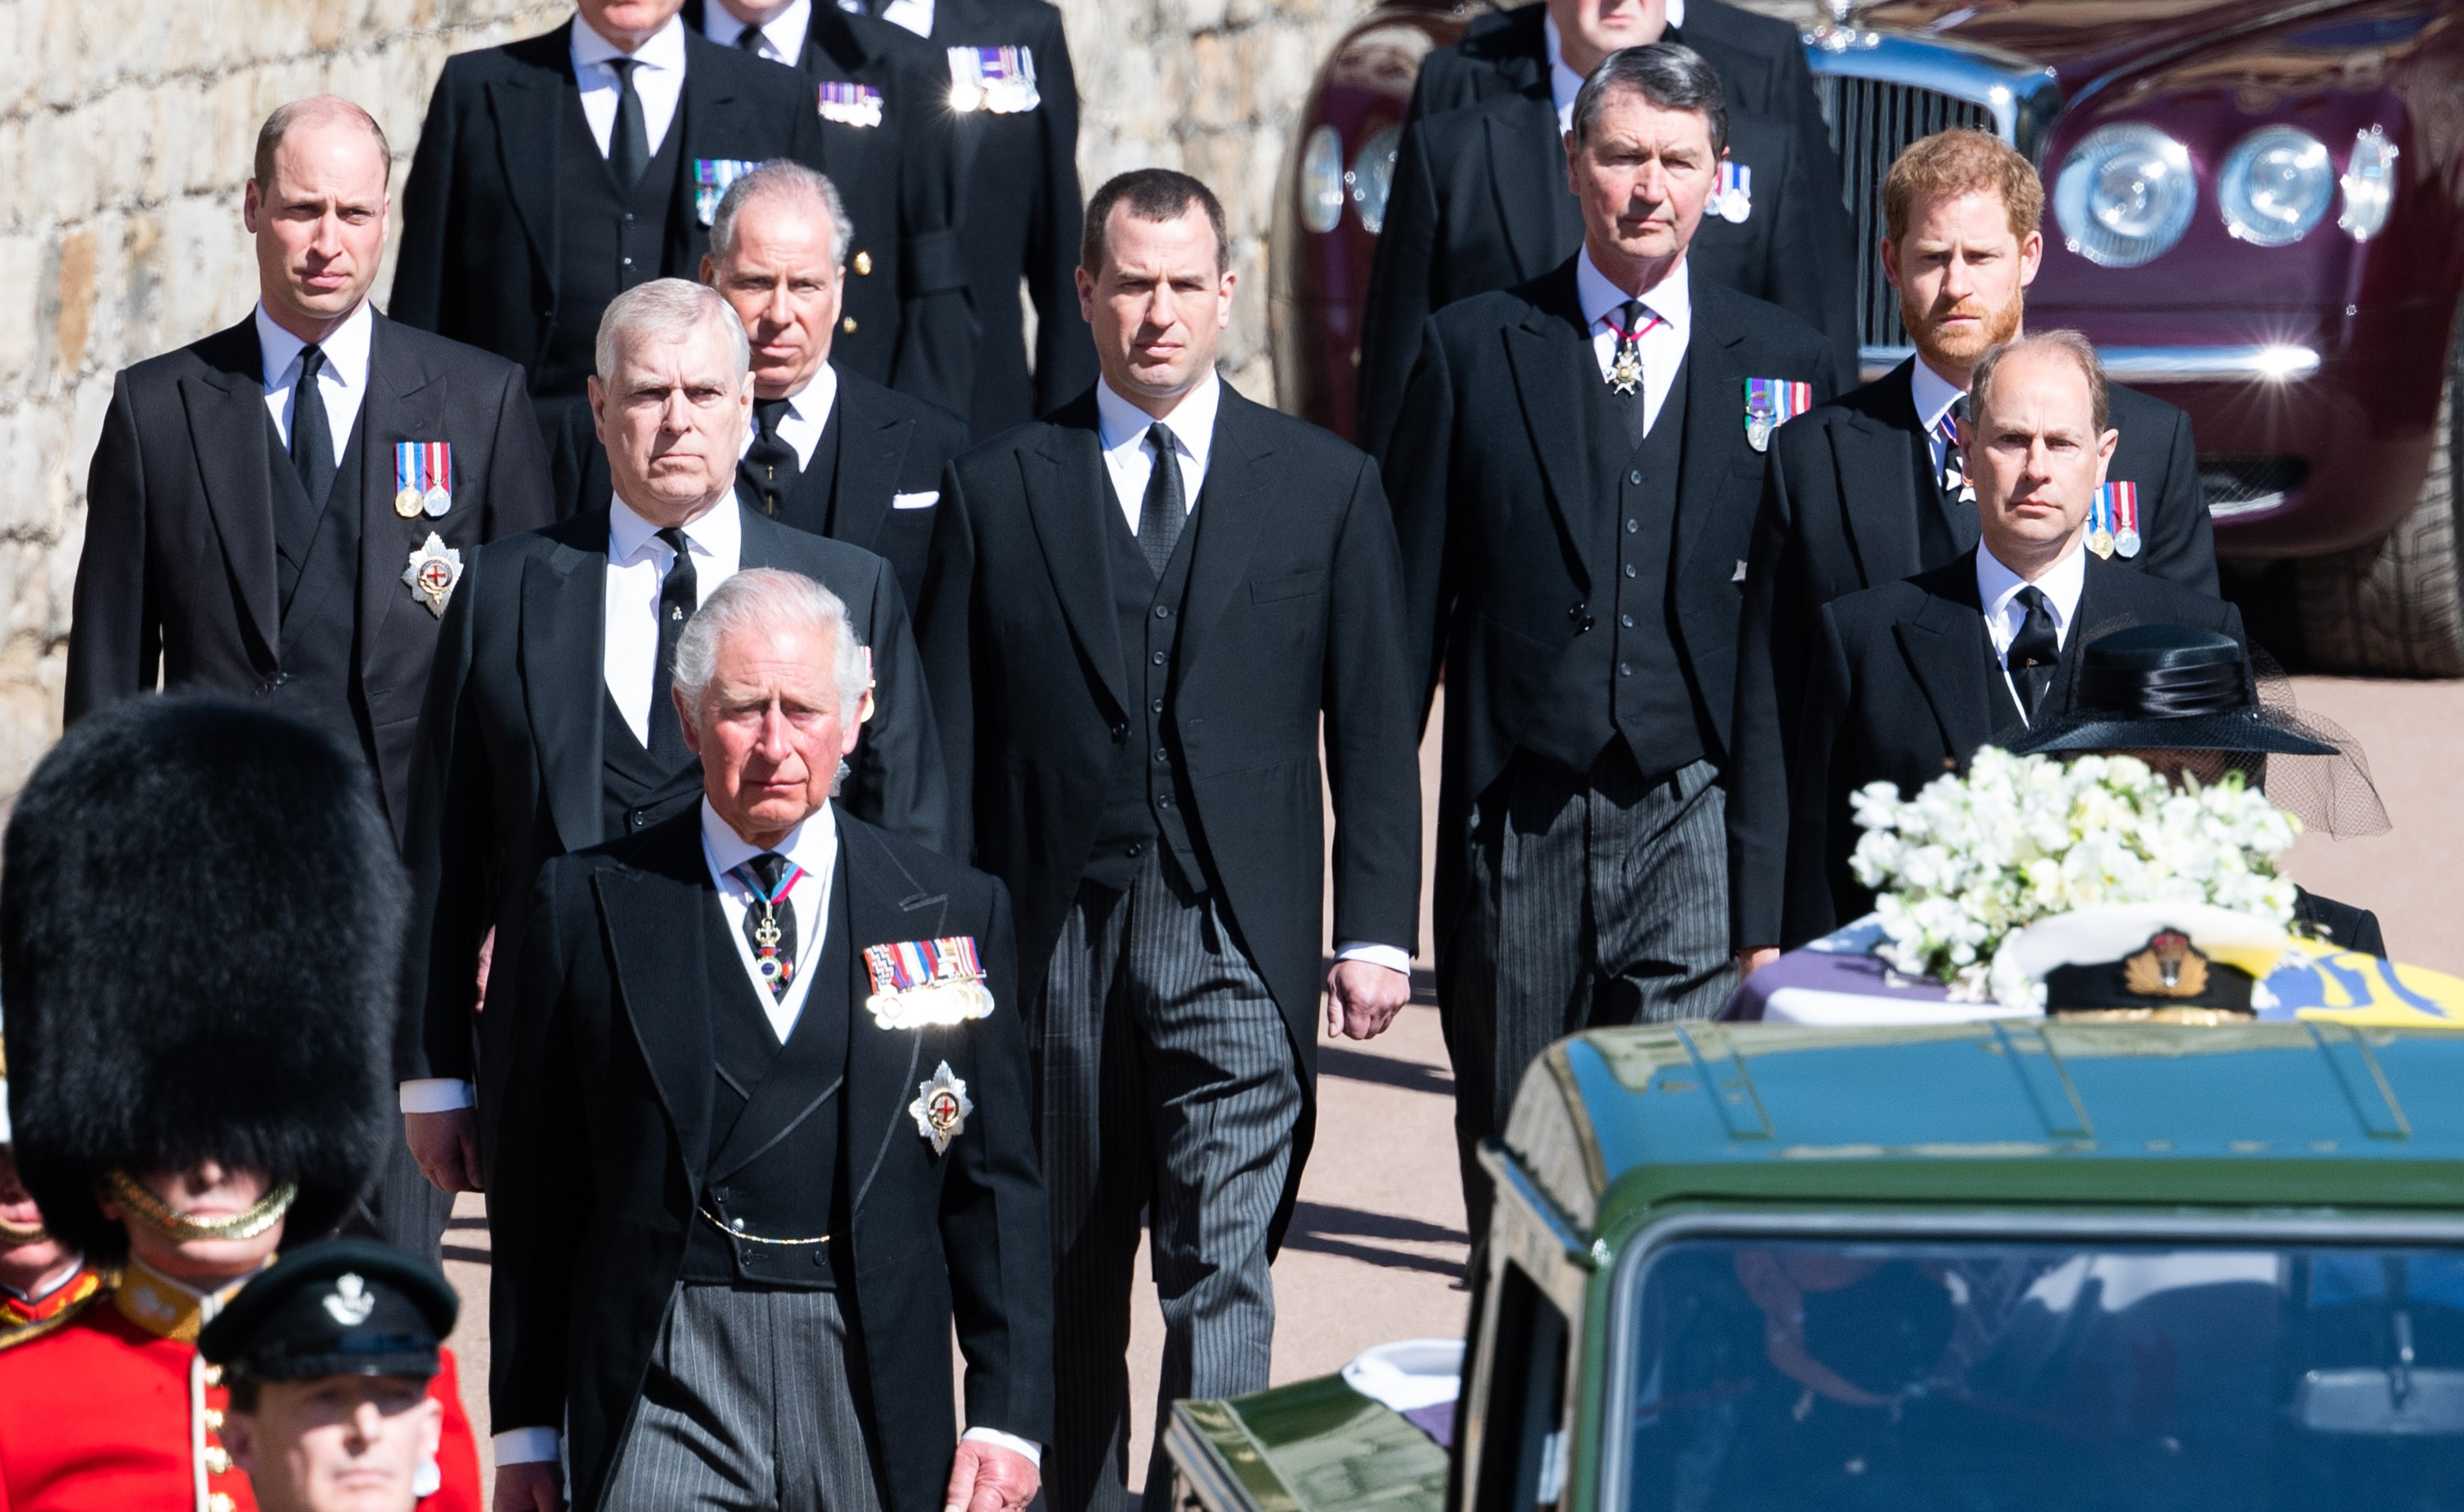 Photos From Prince Philip's Funeral Show The Royal Family In Mourning